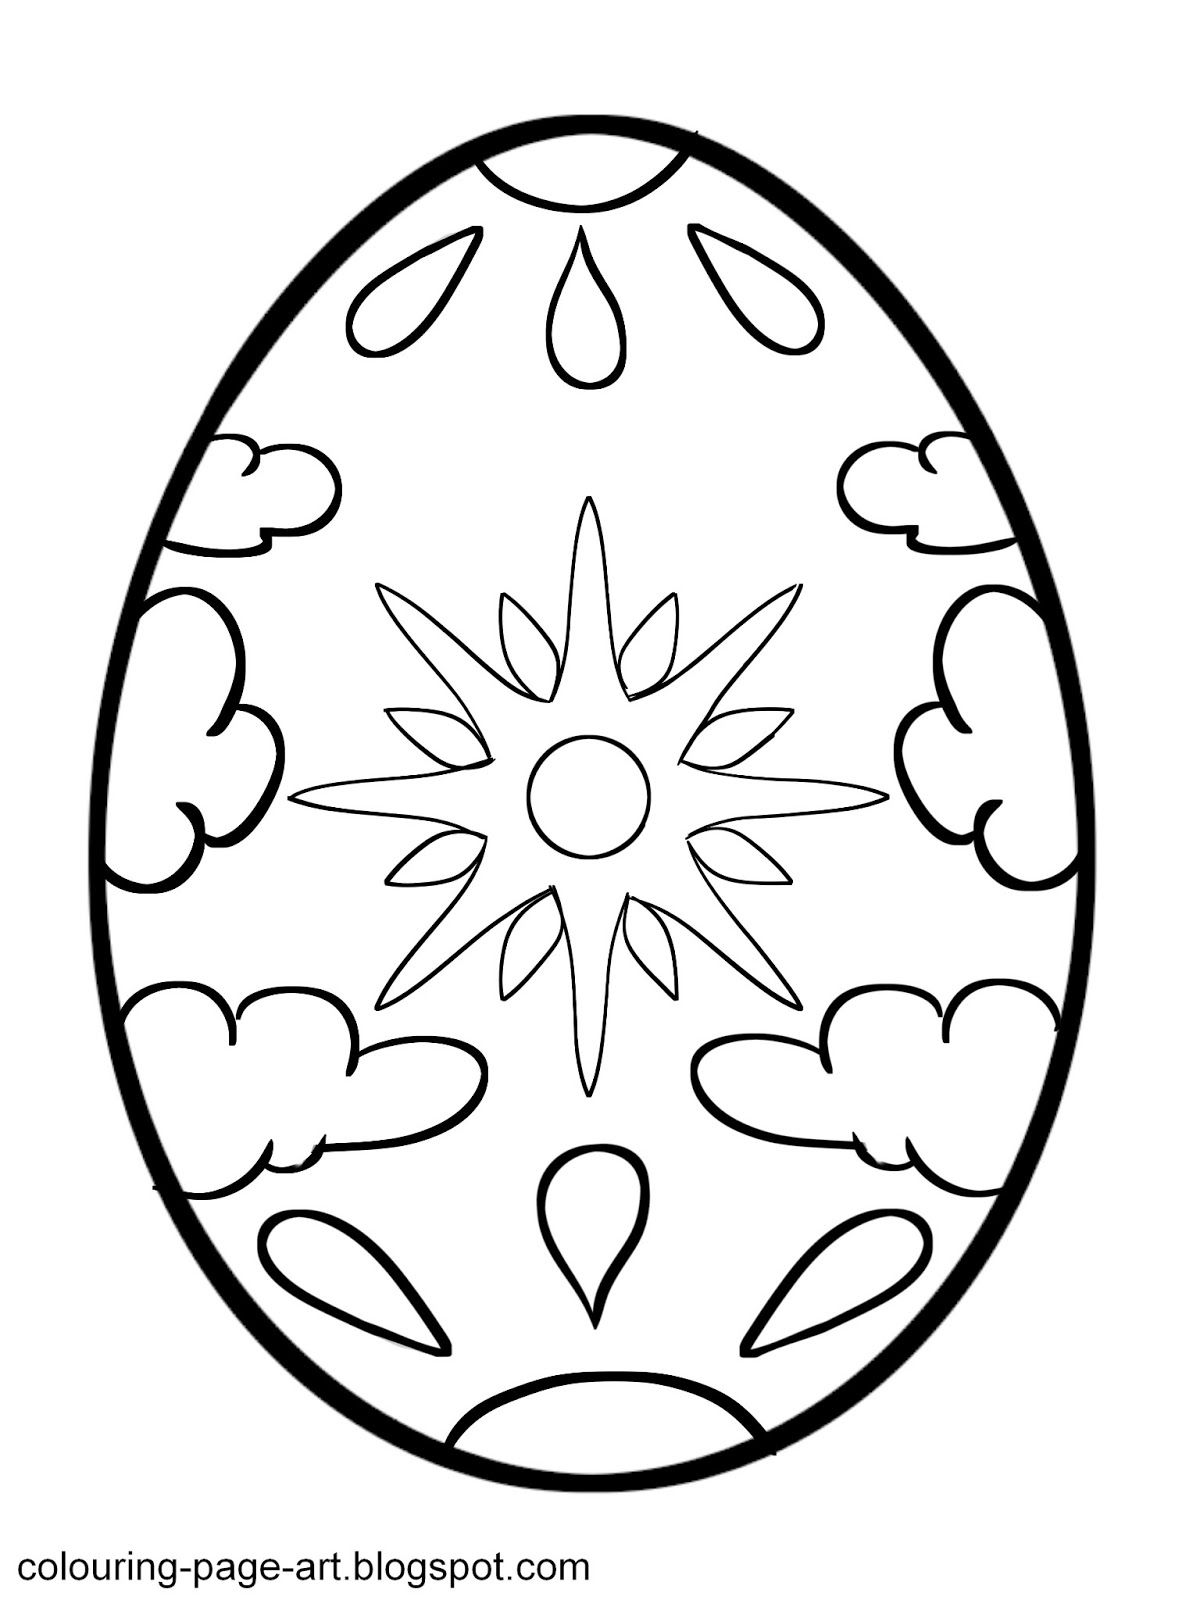 egg coloring book pages - photo#16